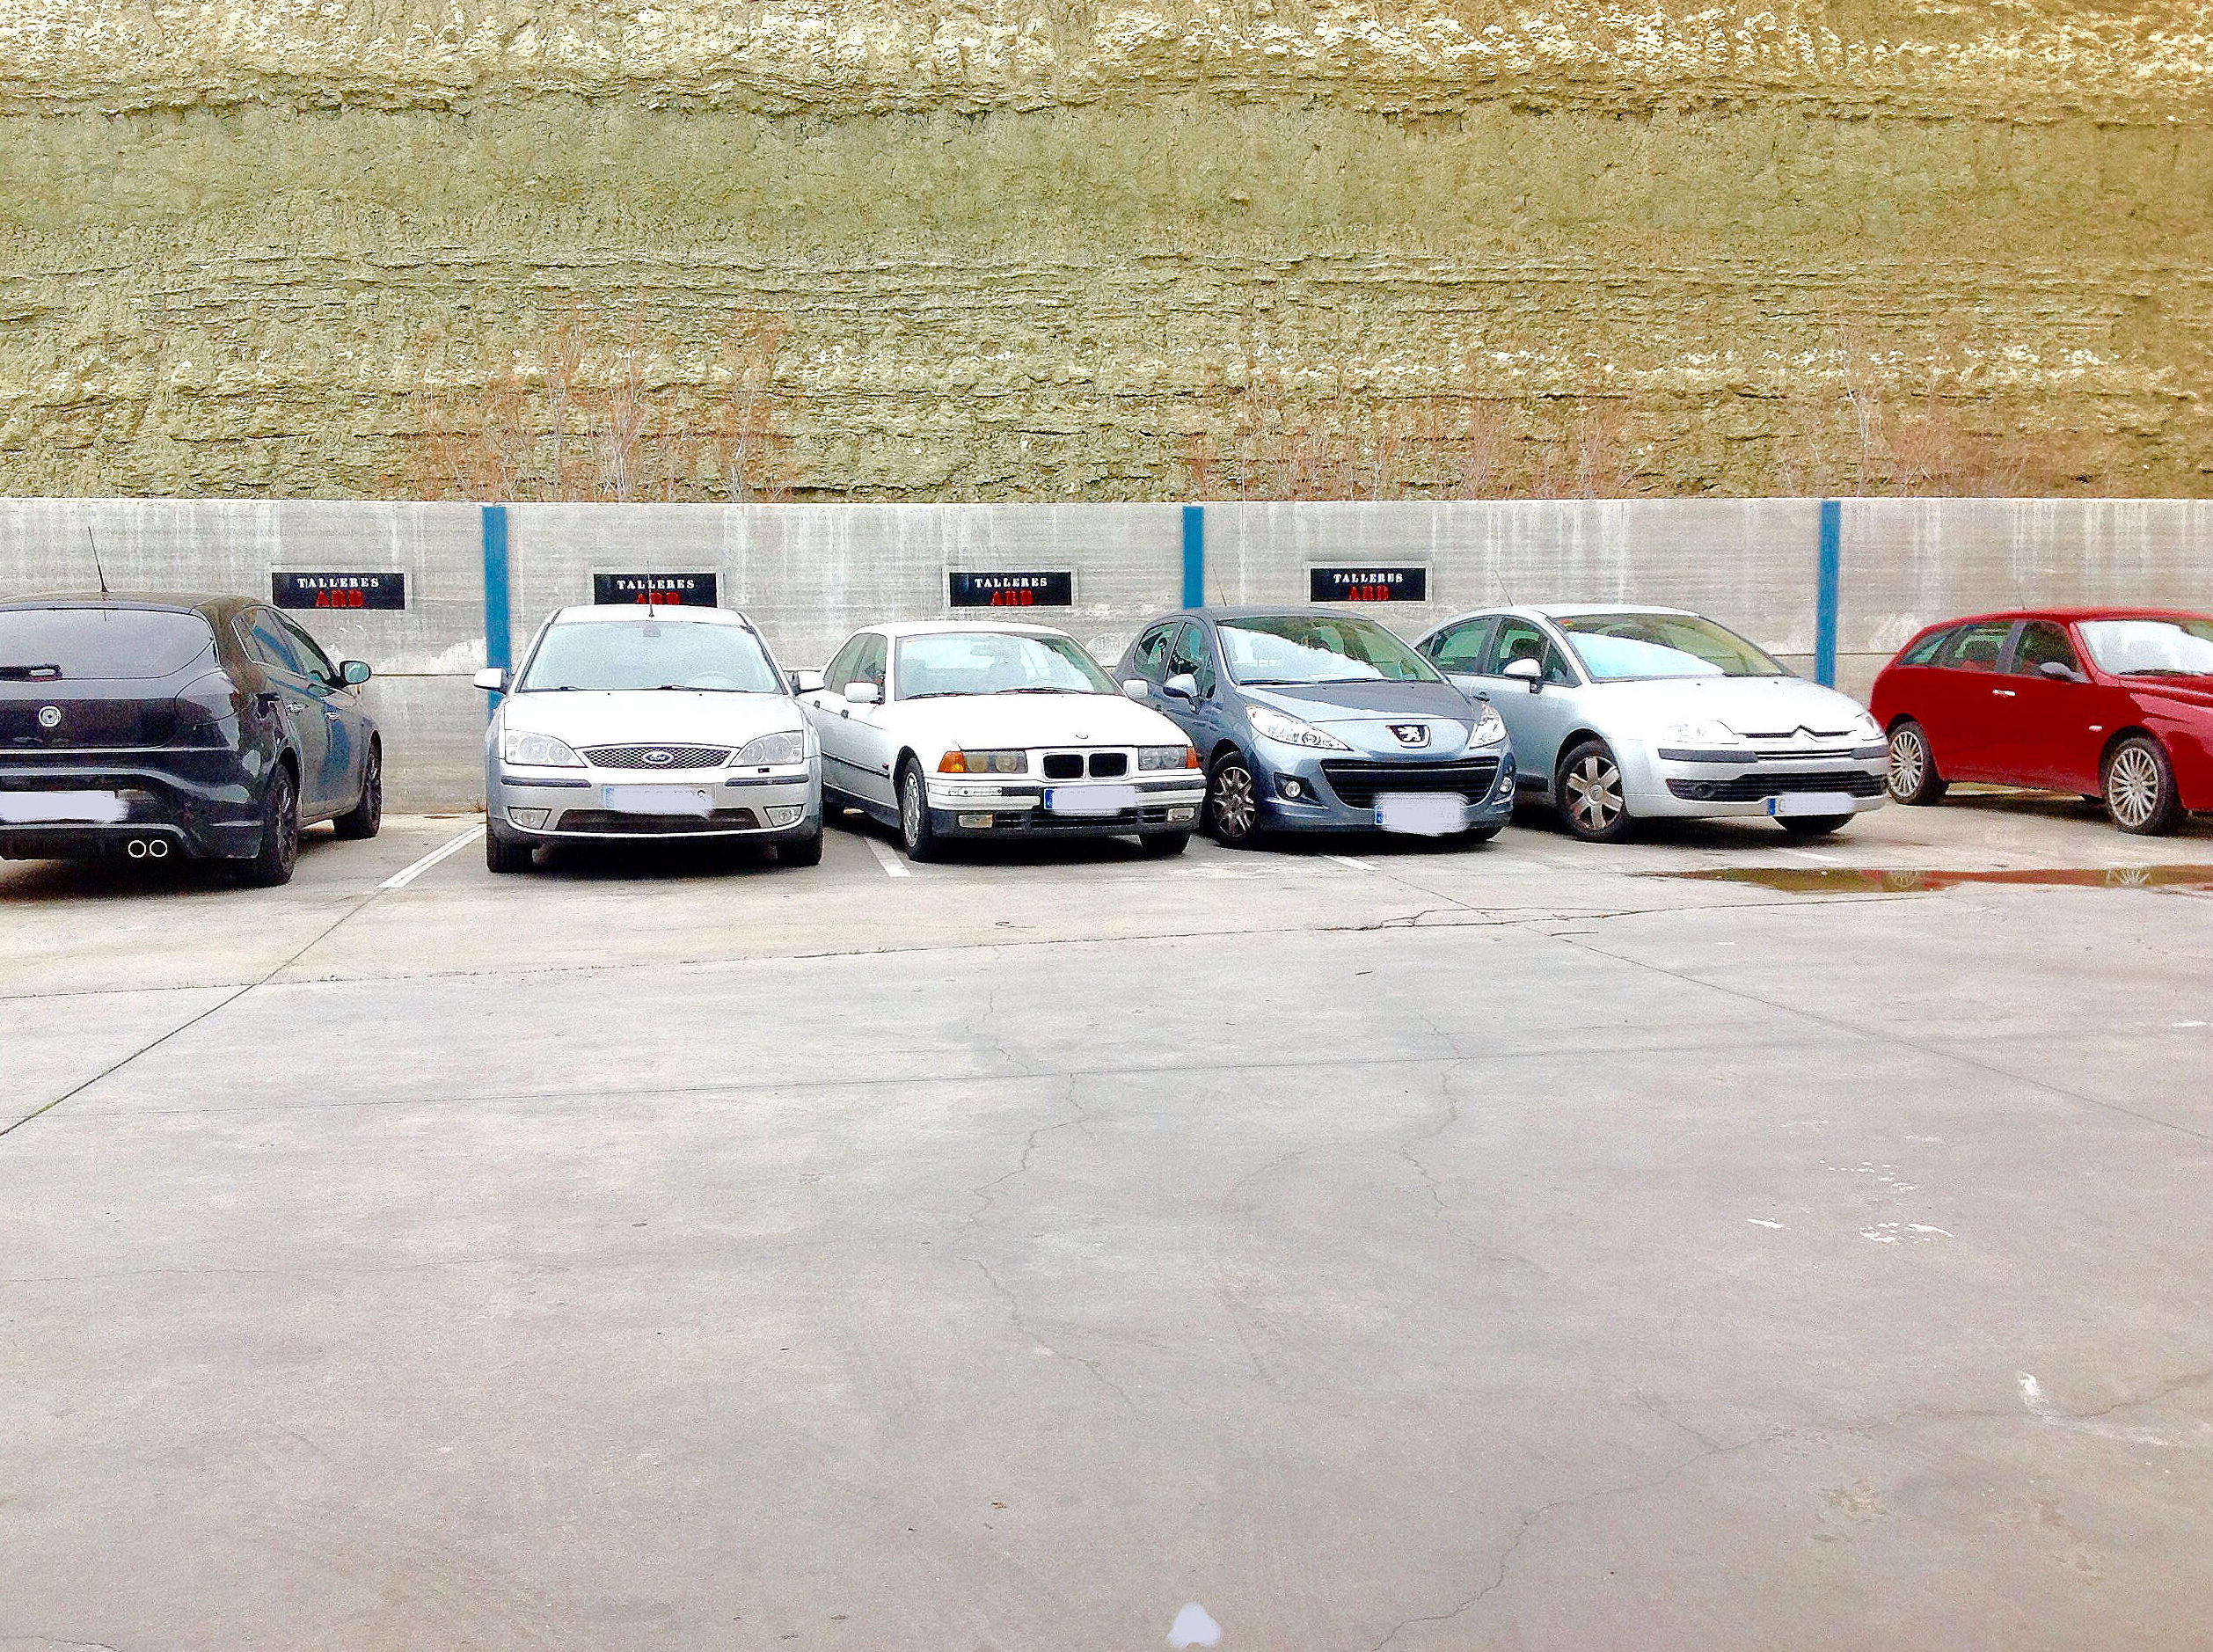 Parking privado Aparcamiento clientes